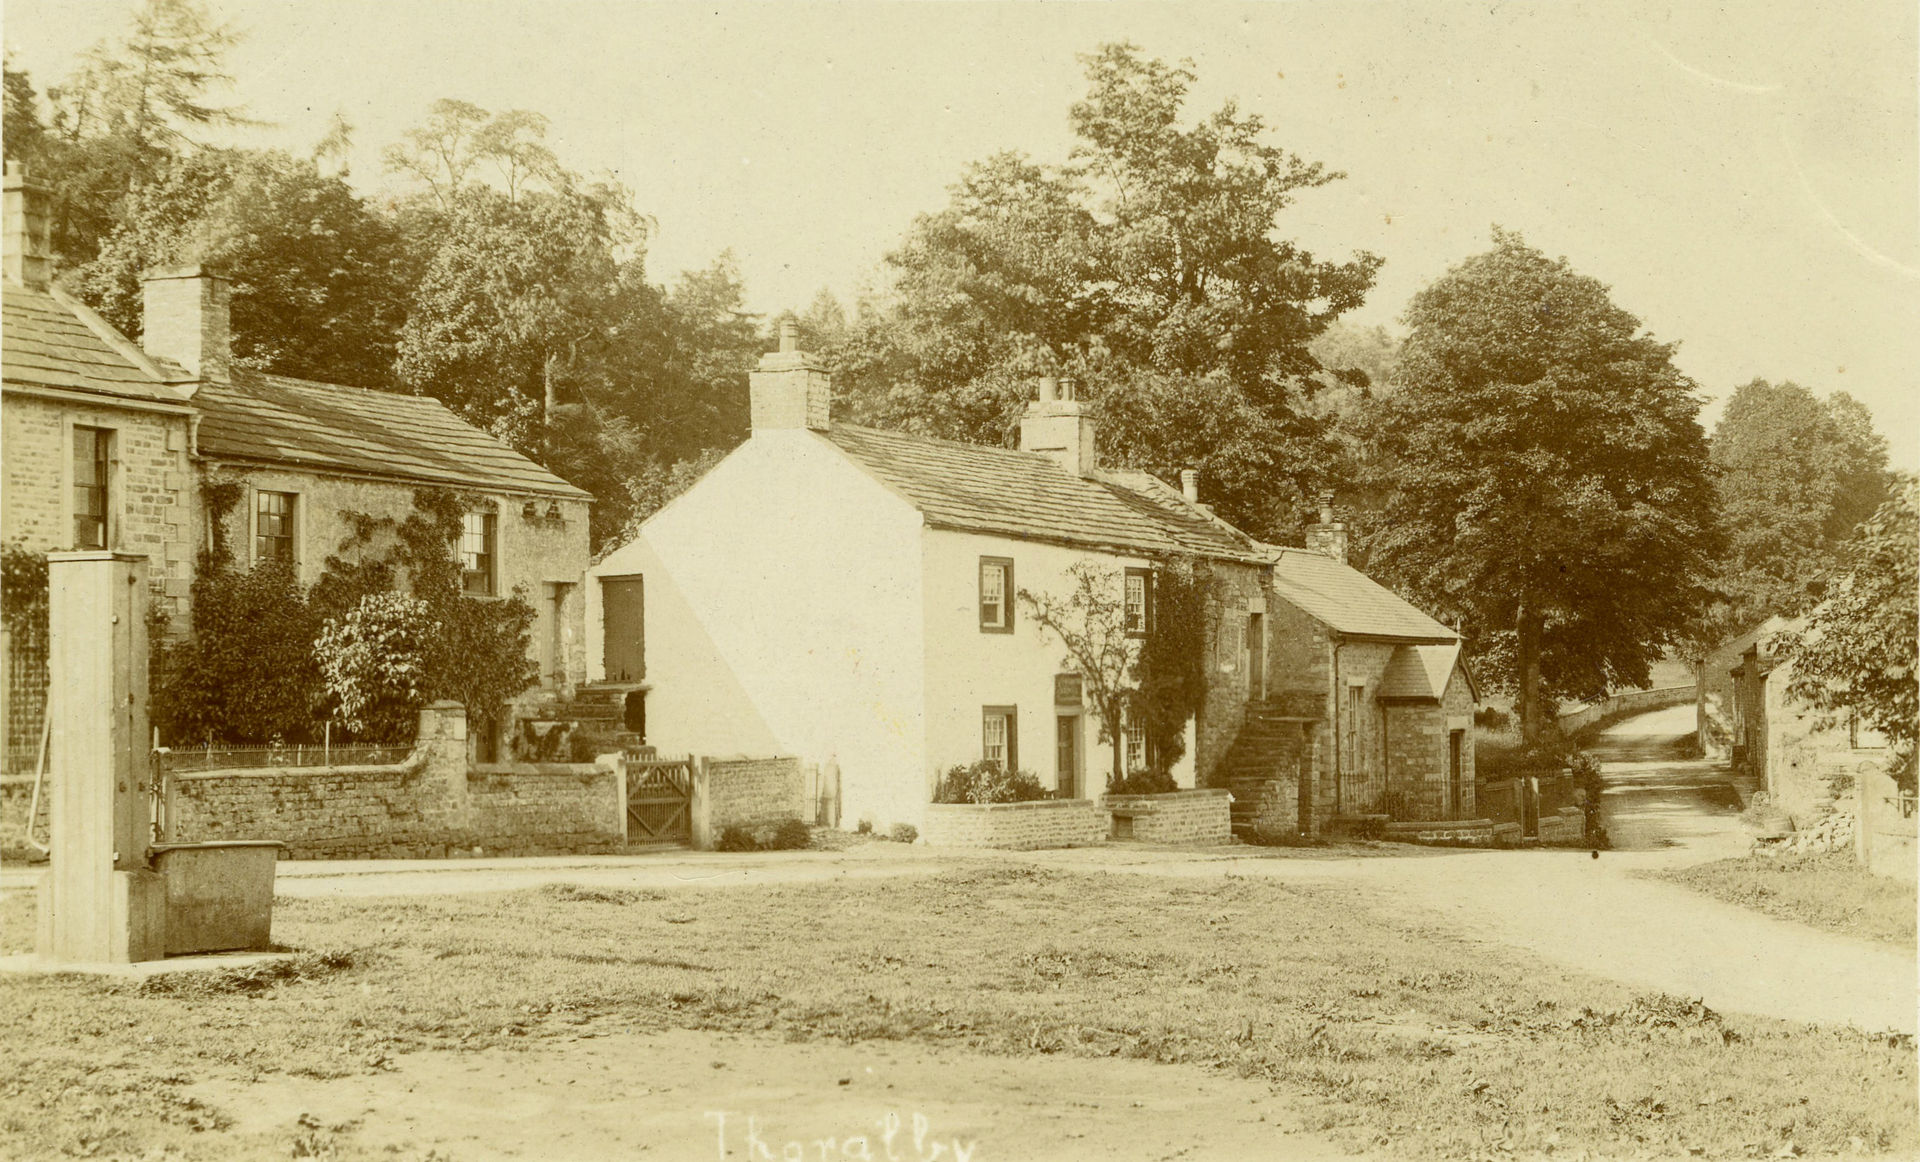 Thoralby village green water pump, shop, and Reading Room, c.1904.